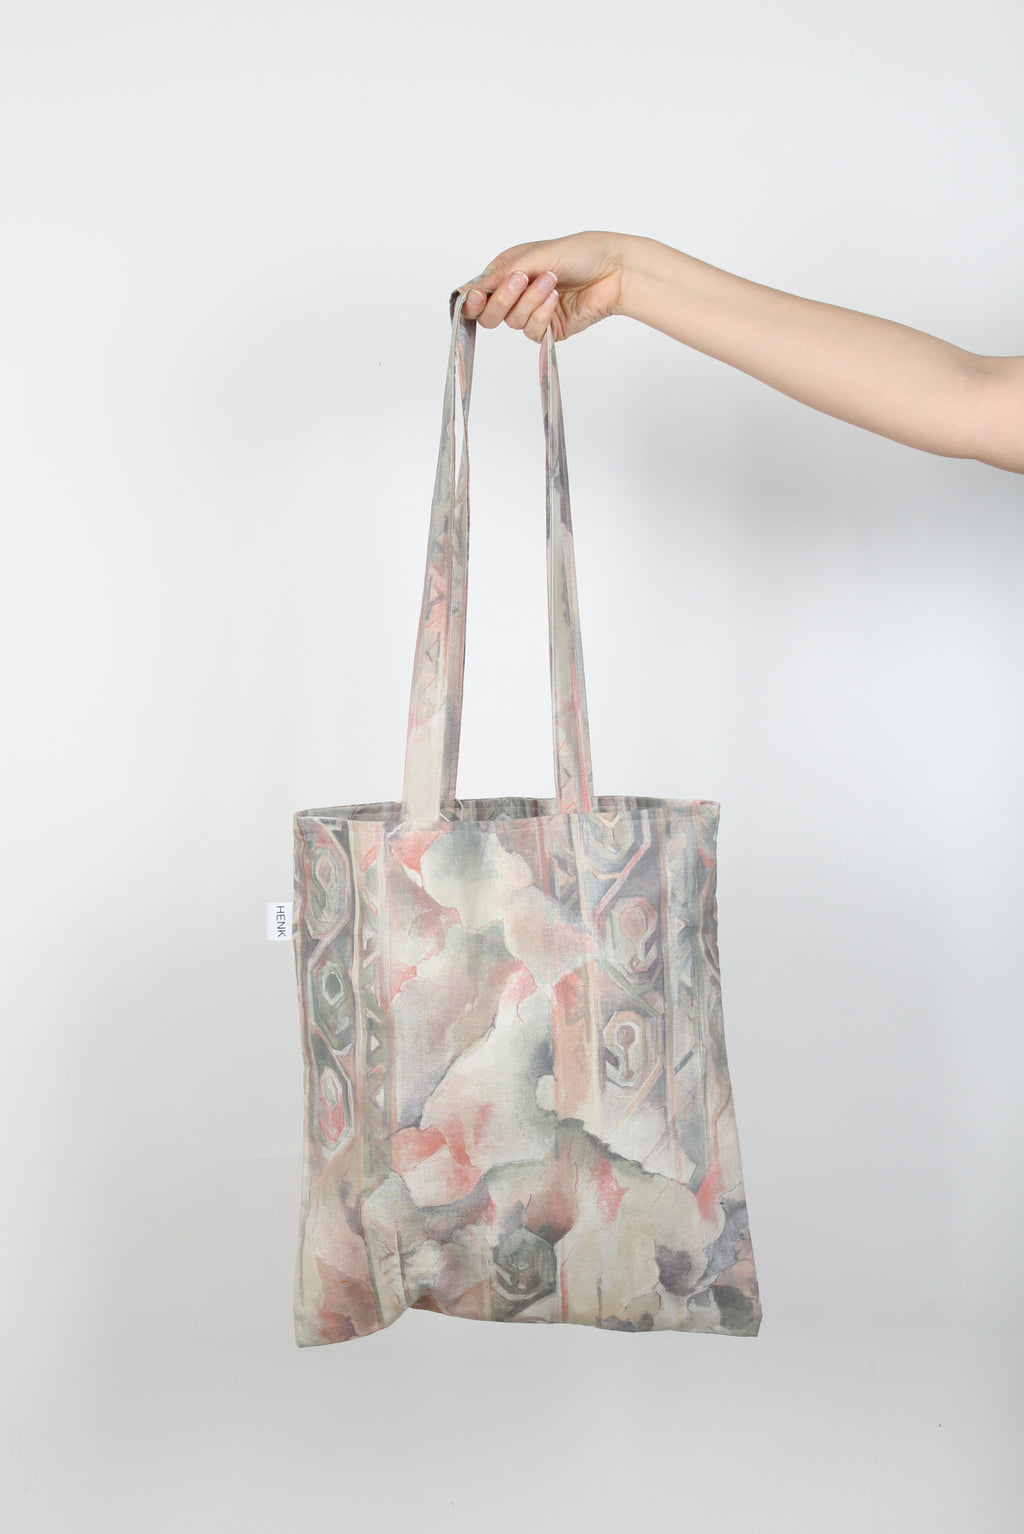 GREY AND PALE PINK TOTE BAG - IKIGAI LABELS